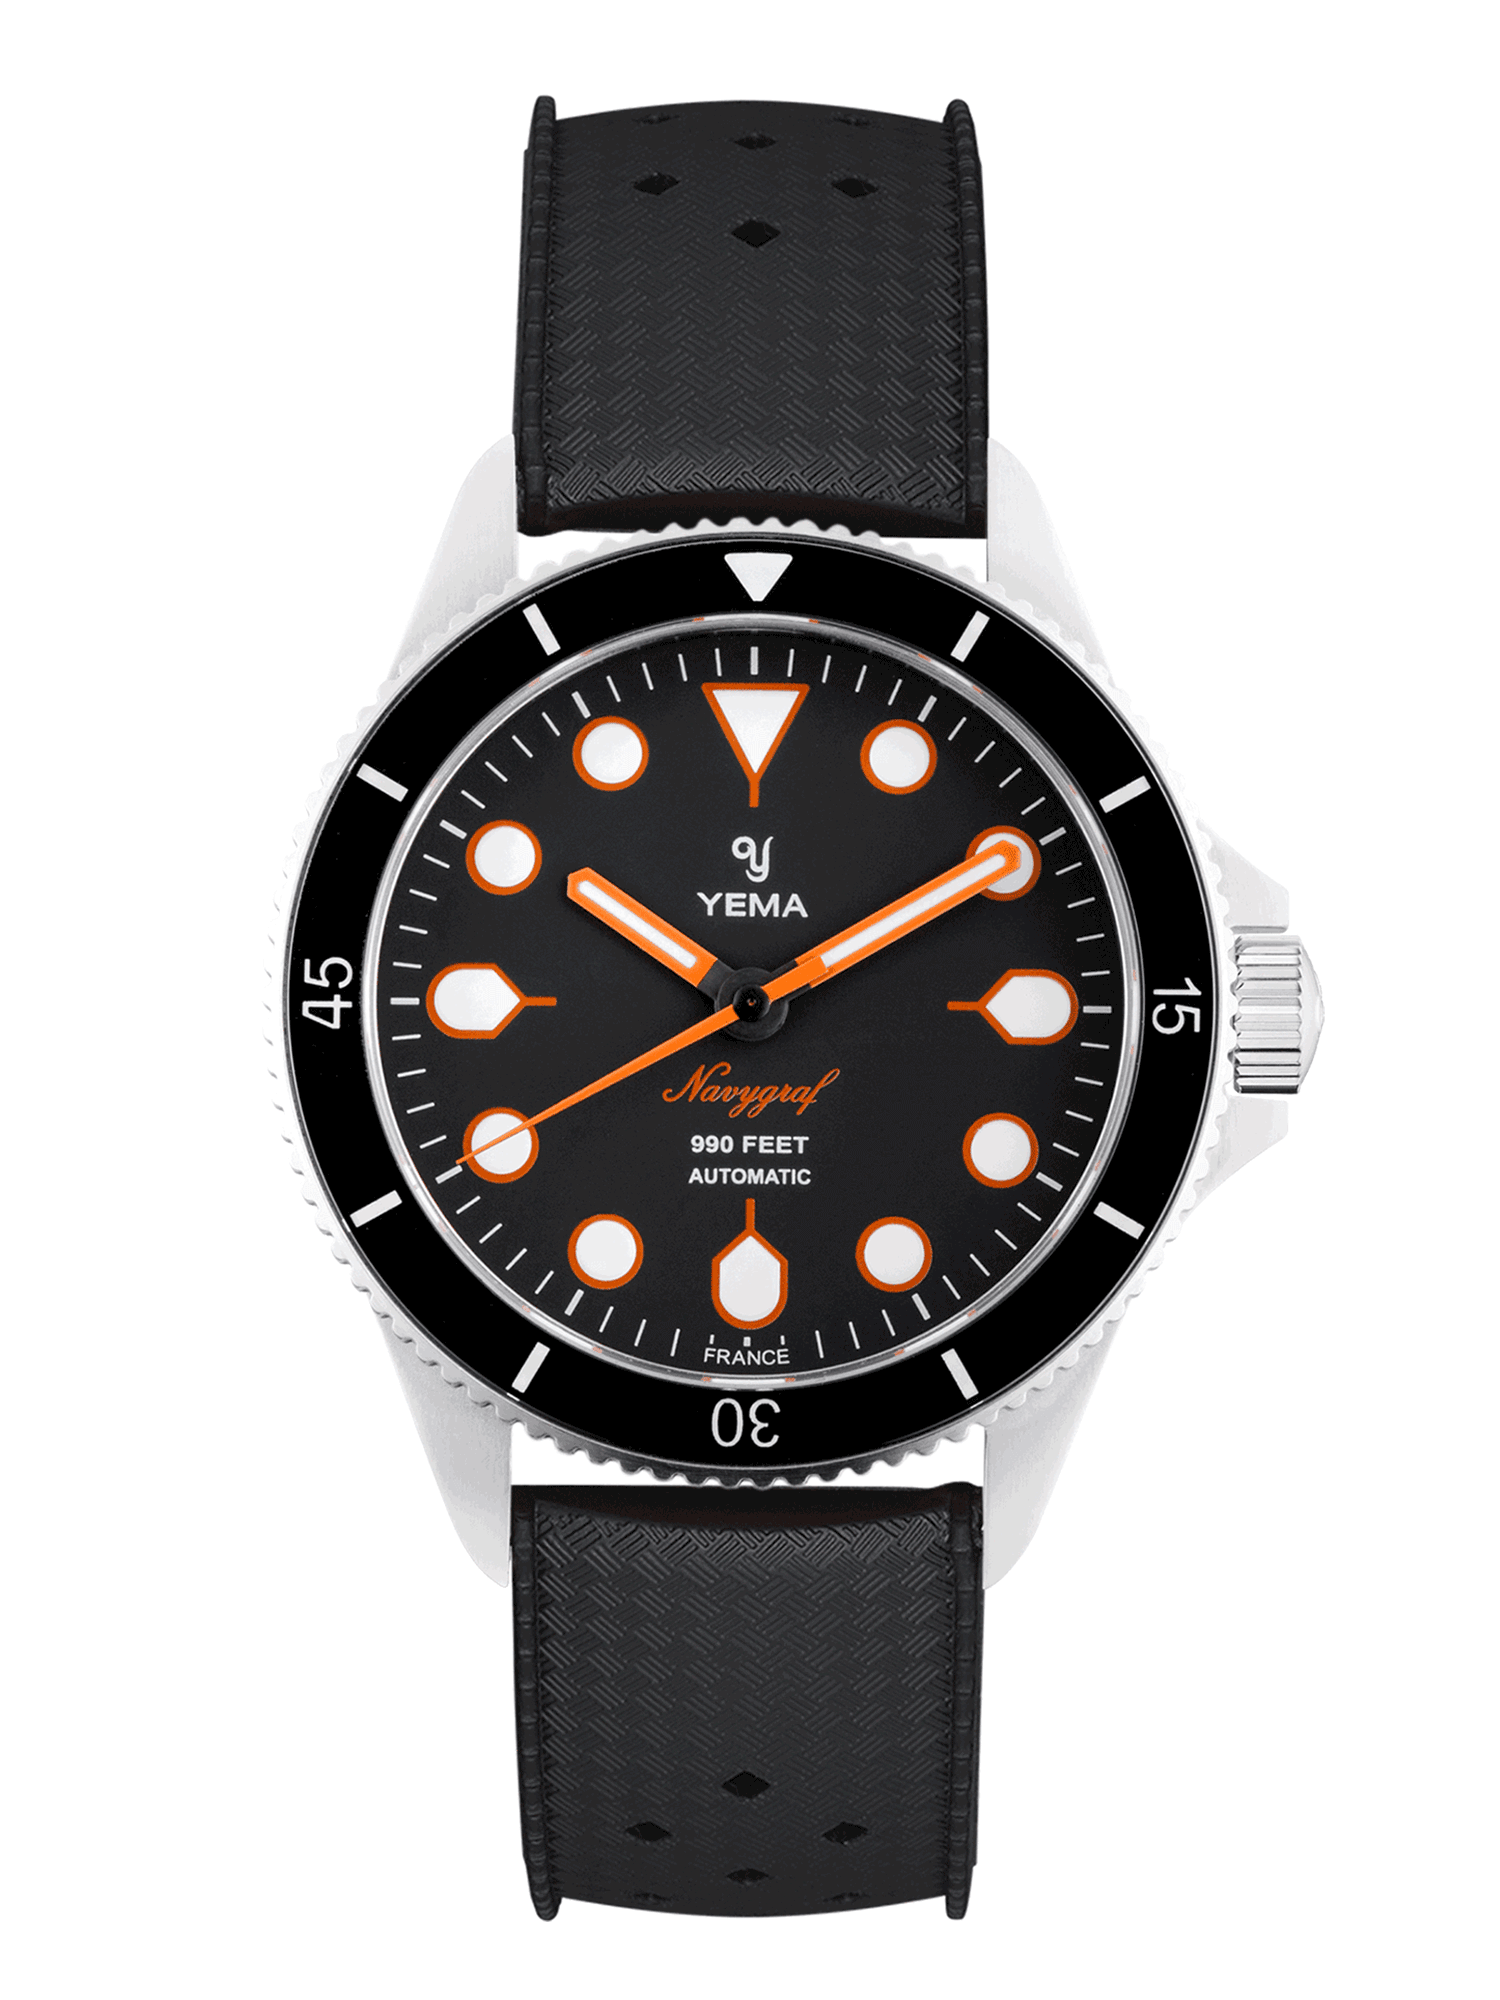 YEMA Navygraf Maxi Dial, black leather strap